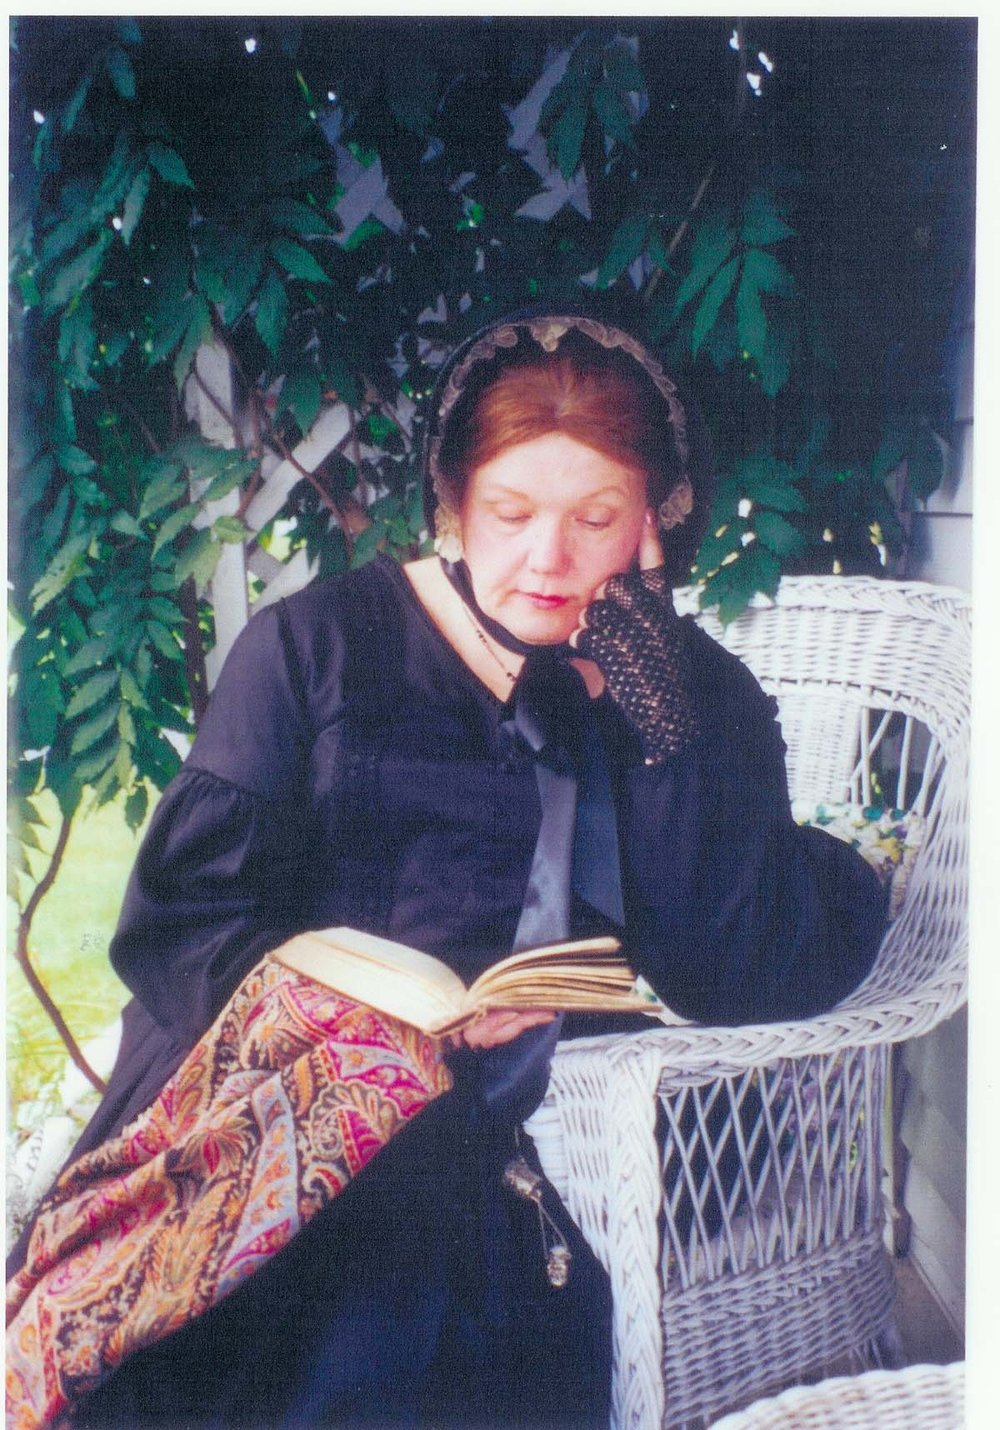 History is story. Meet Annie in person and ask her what inspired her. What inner calling to explore time and space in the great silence of a star-strewn sky inspired her? - Linda Chatfield as Annie. .